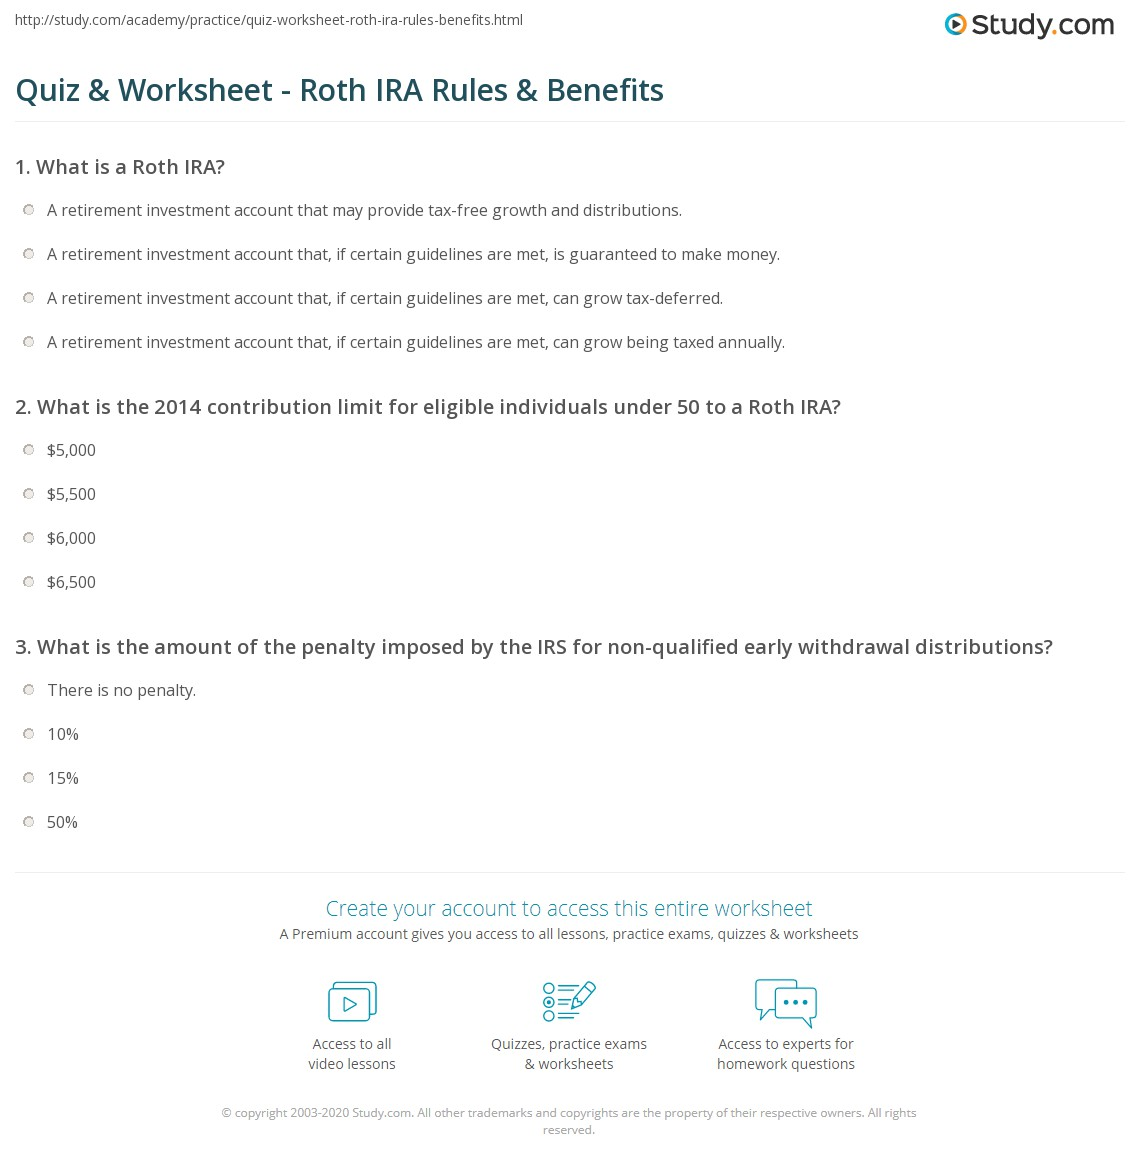 irs social security benefits worksheet Termolak – Social Security Benefits Worksheet 1040a